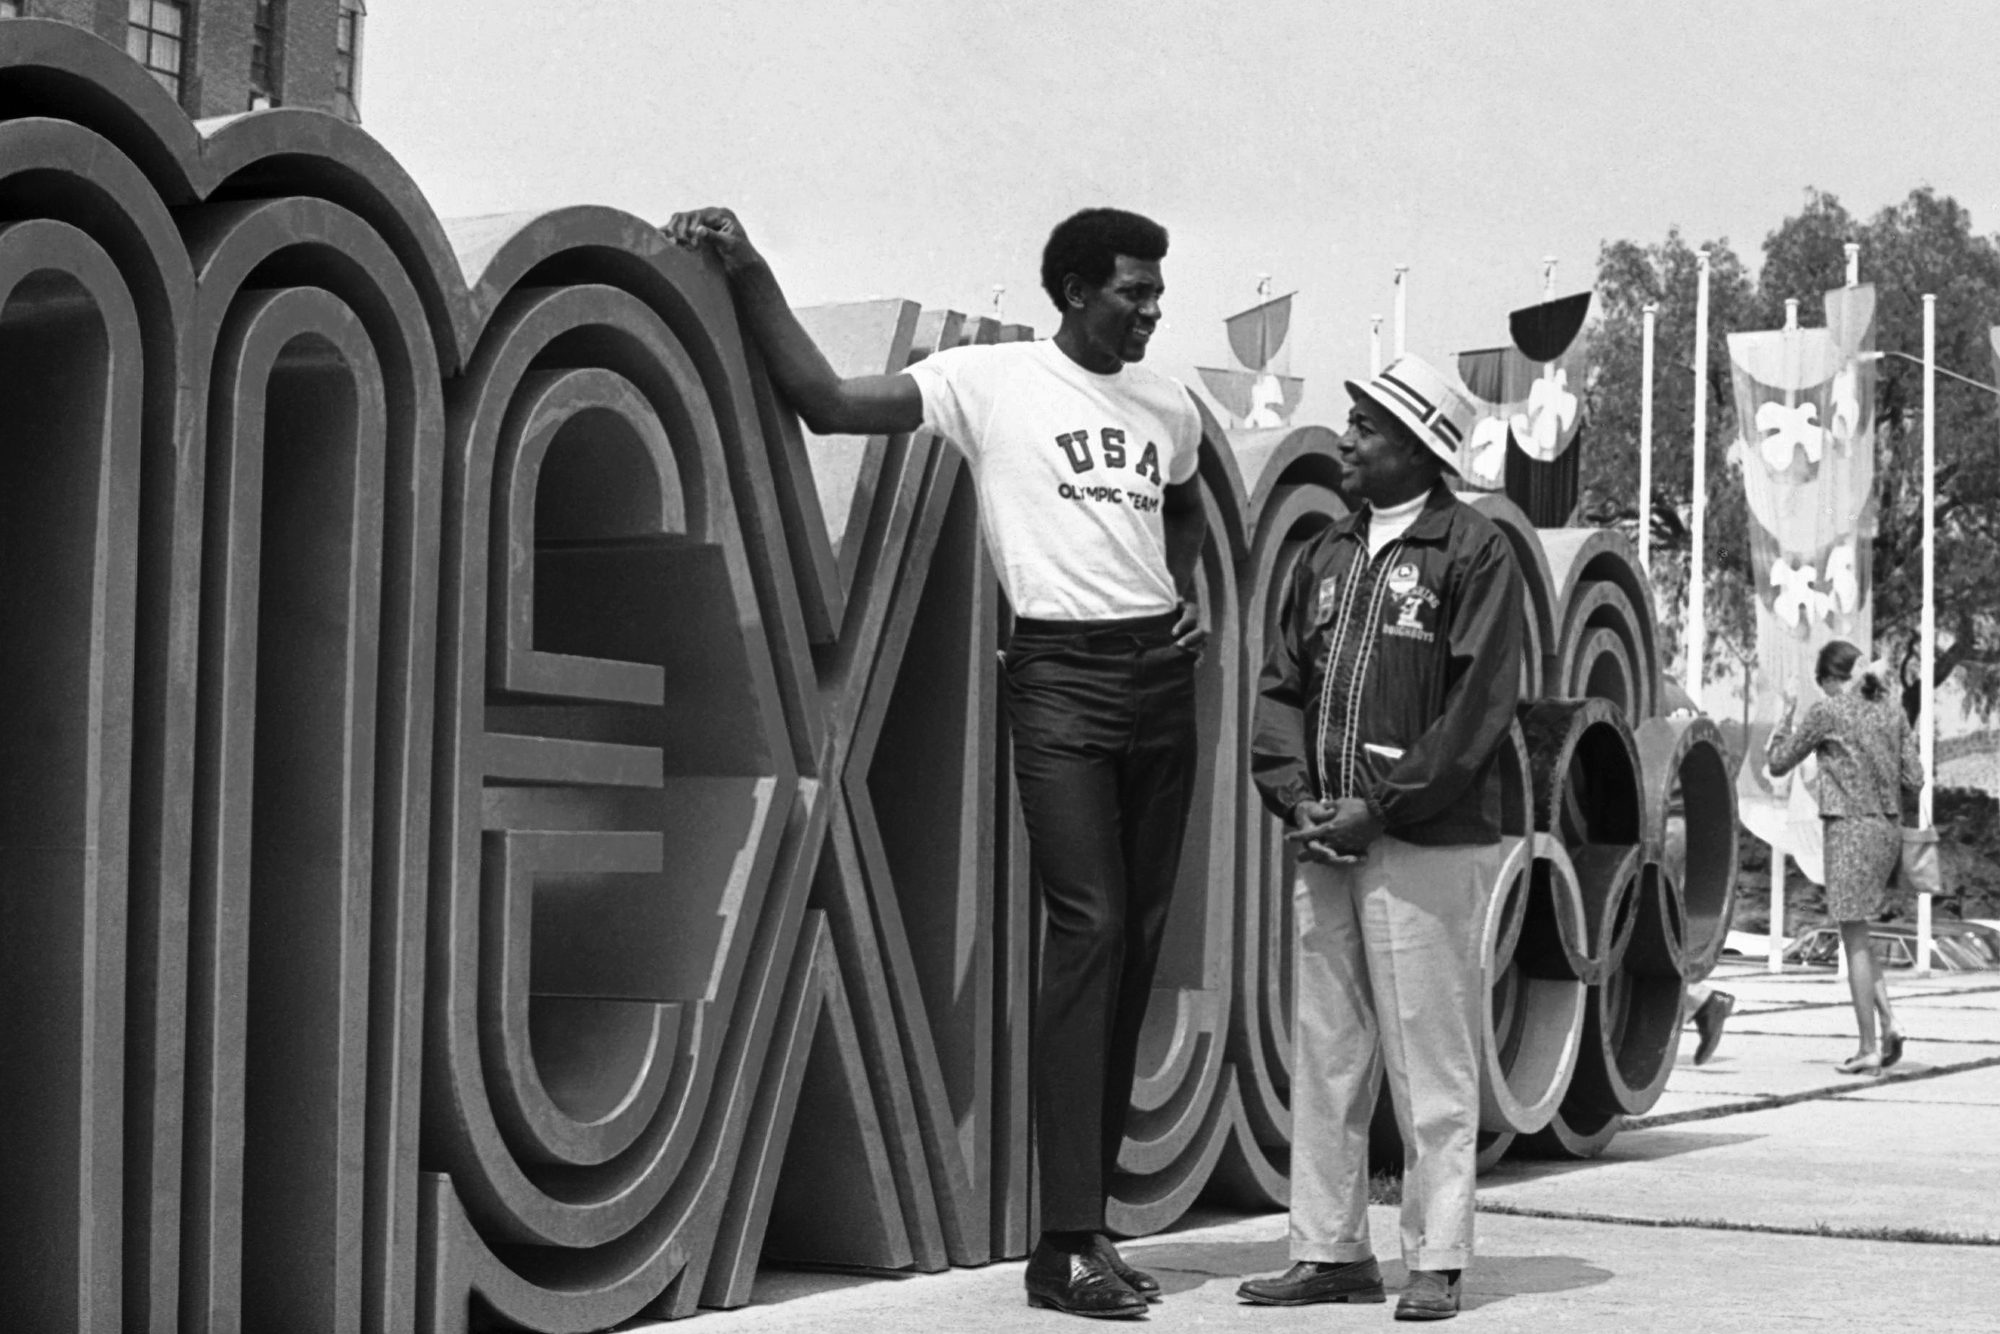 Spencer Haywood, member of the United States basketball team which has reached the finals in the Mexico City Olympic games, shows his father, Will Robinson, the sights in the Olympic Village in Mexico City Oct. 23, 1968. (AP Photo)